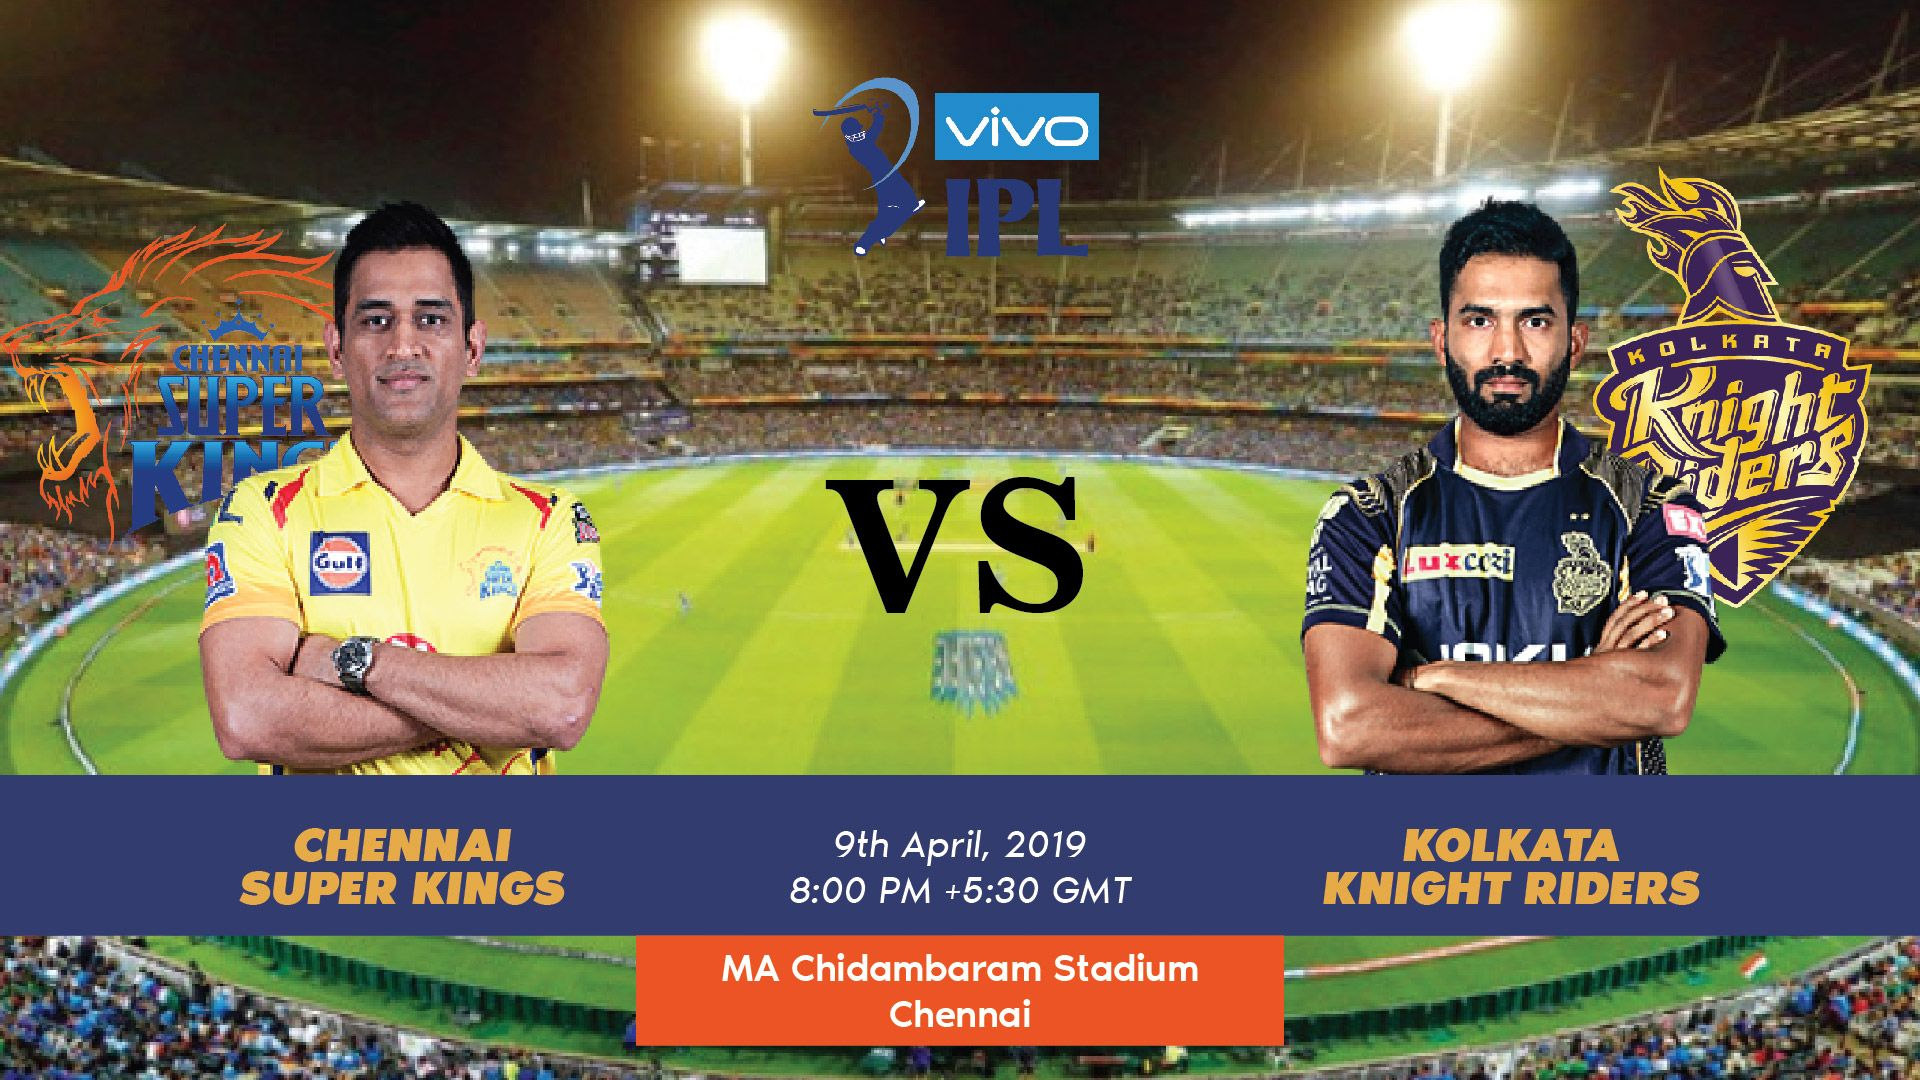 Online betting on ipl matches today machine a obsidienne 1-3 2-4 betting system